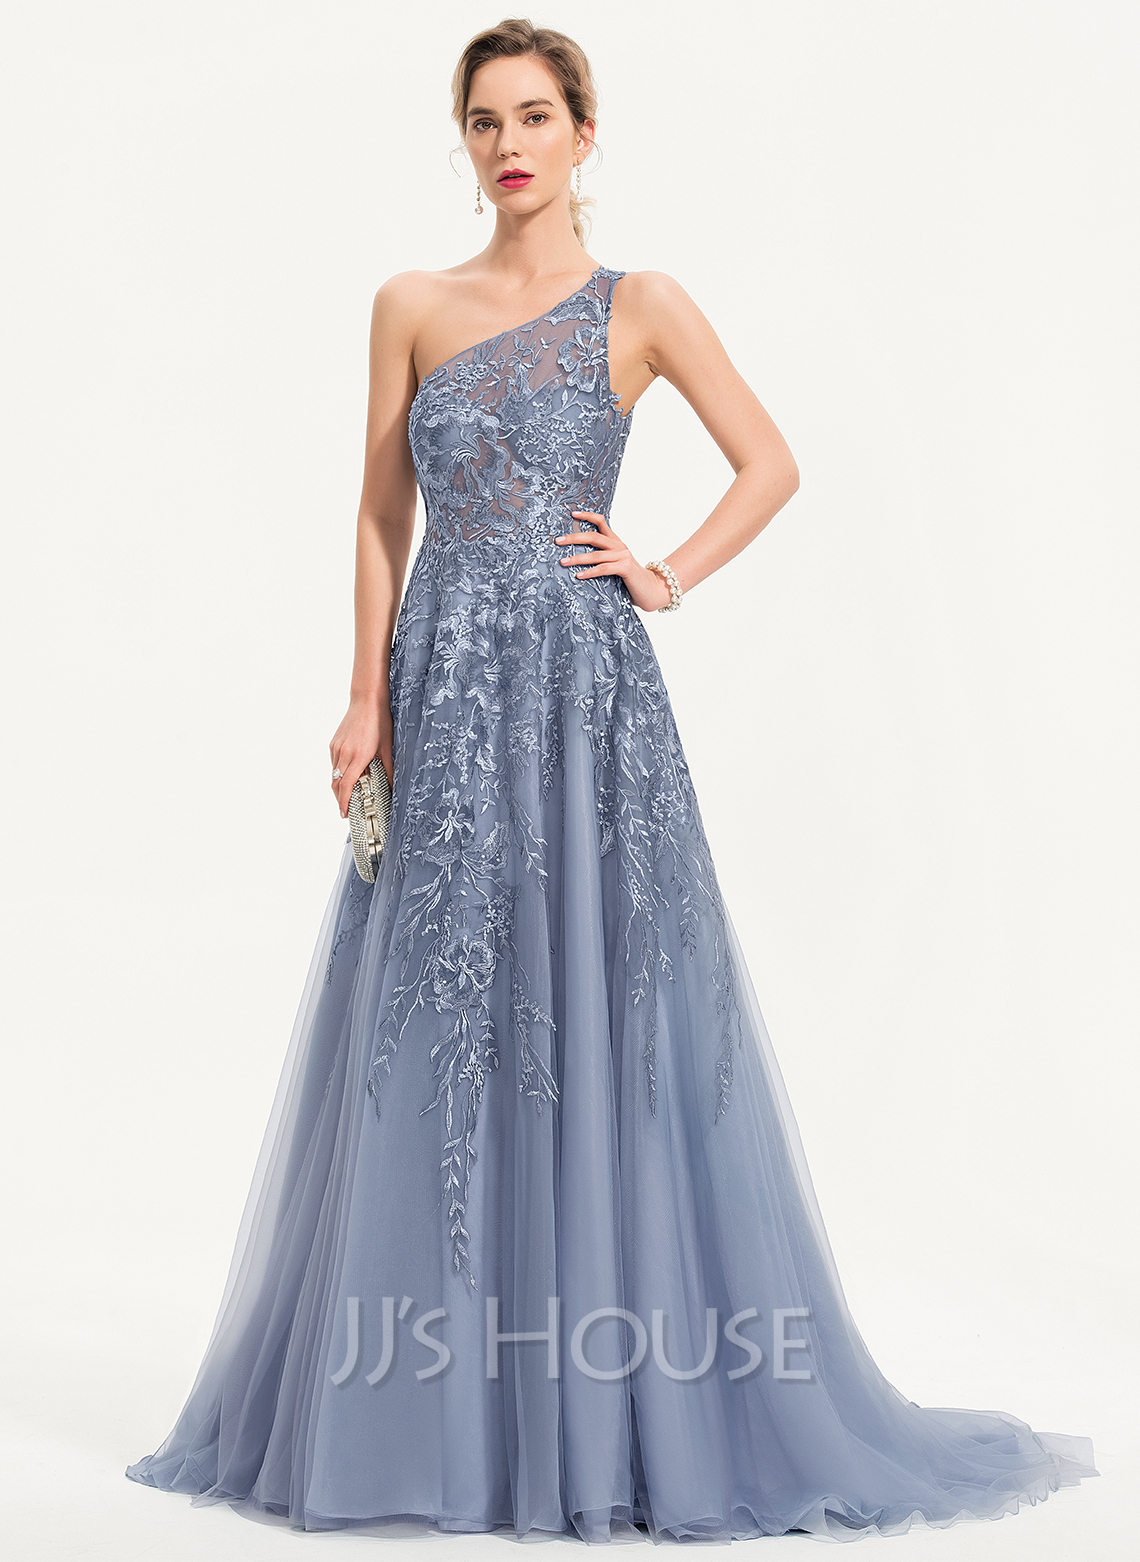 A-Line One-Shoulder Sweep Train Tulle Prom Dresses